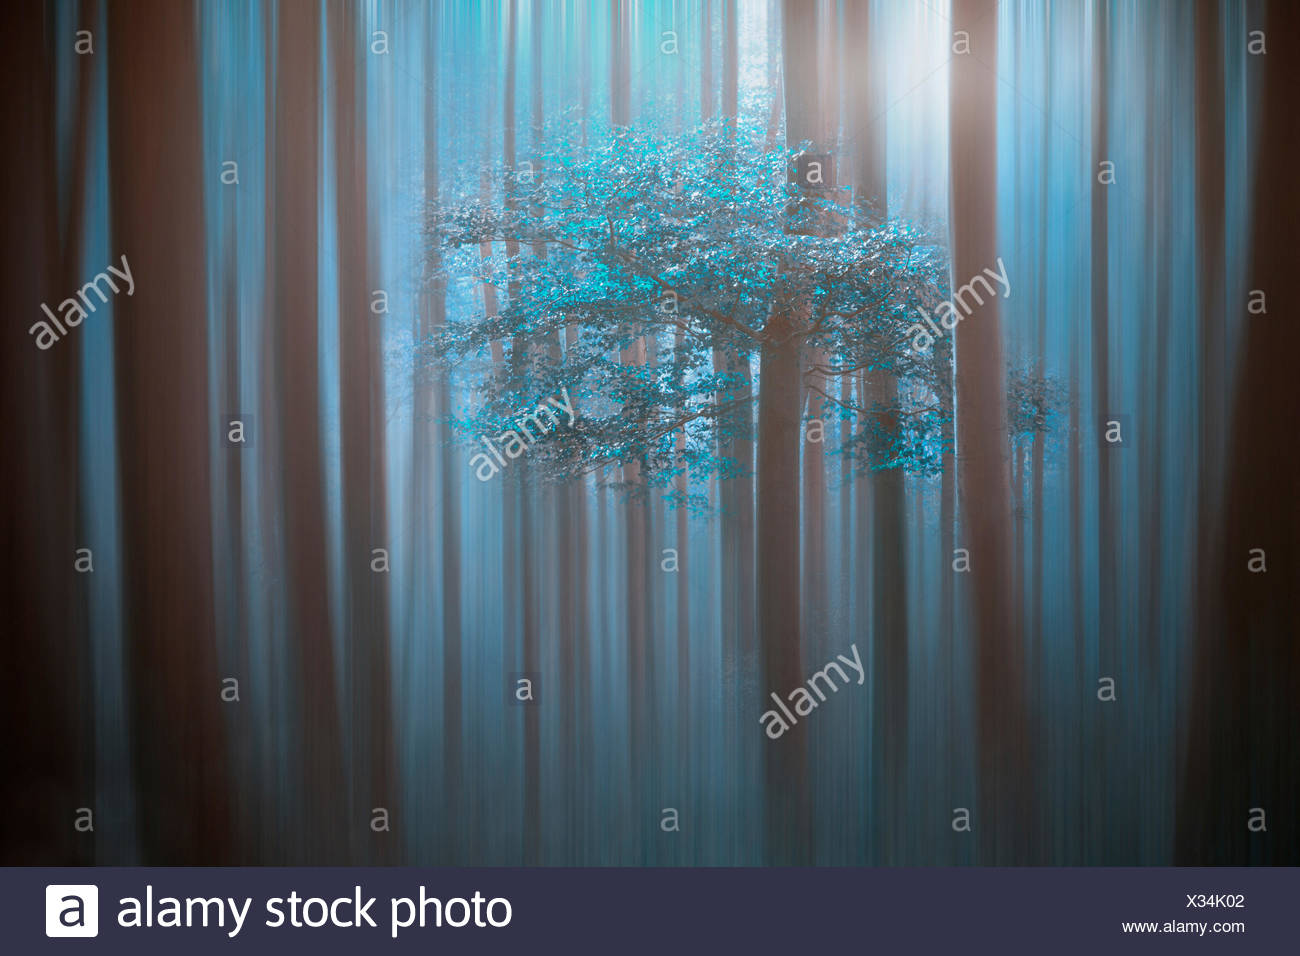 Moonlite Stock Photos Amp Moonlite Stock Images Alamy